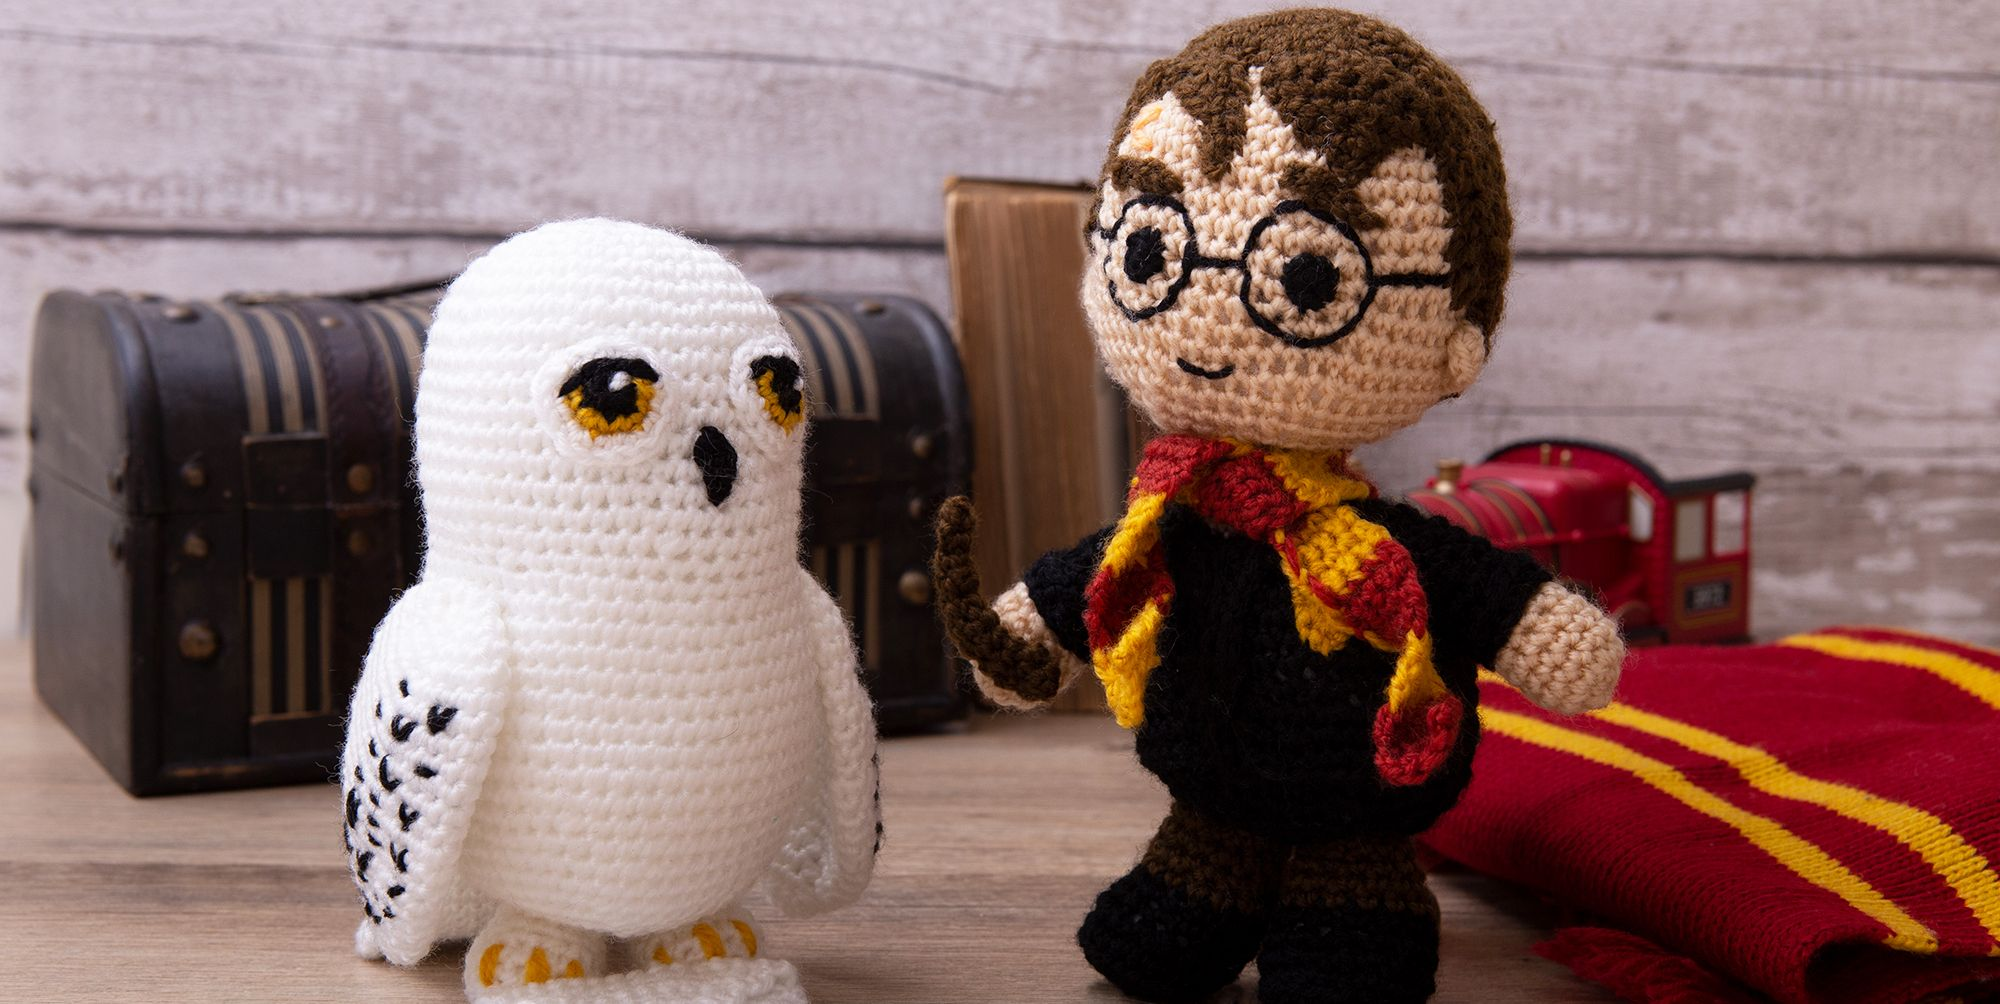 Aldi harry Potter crochet kit